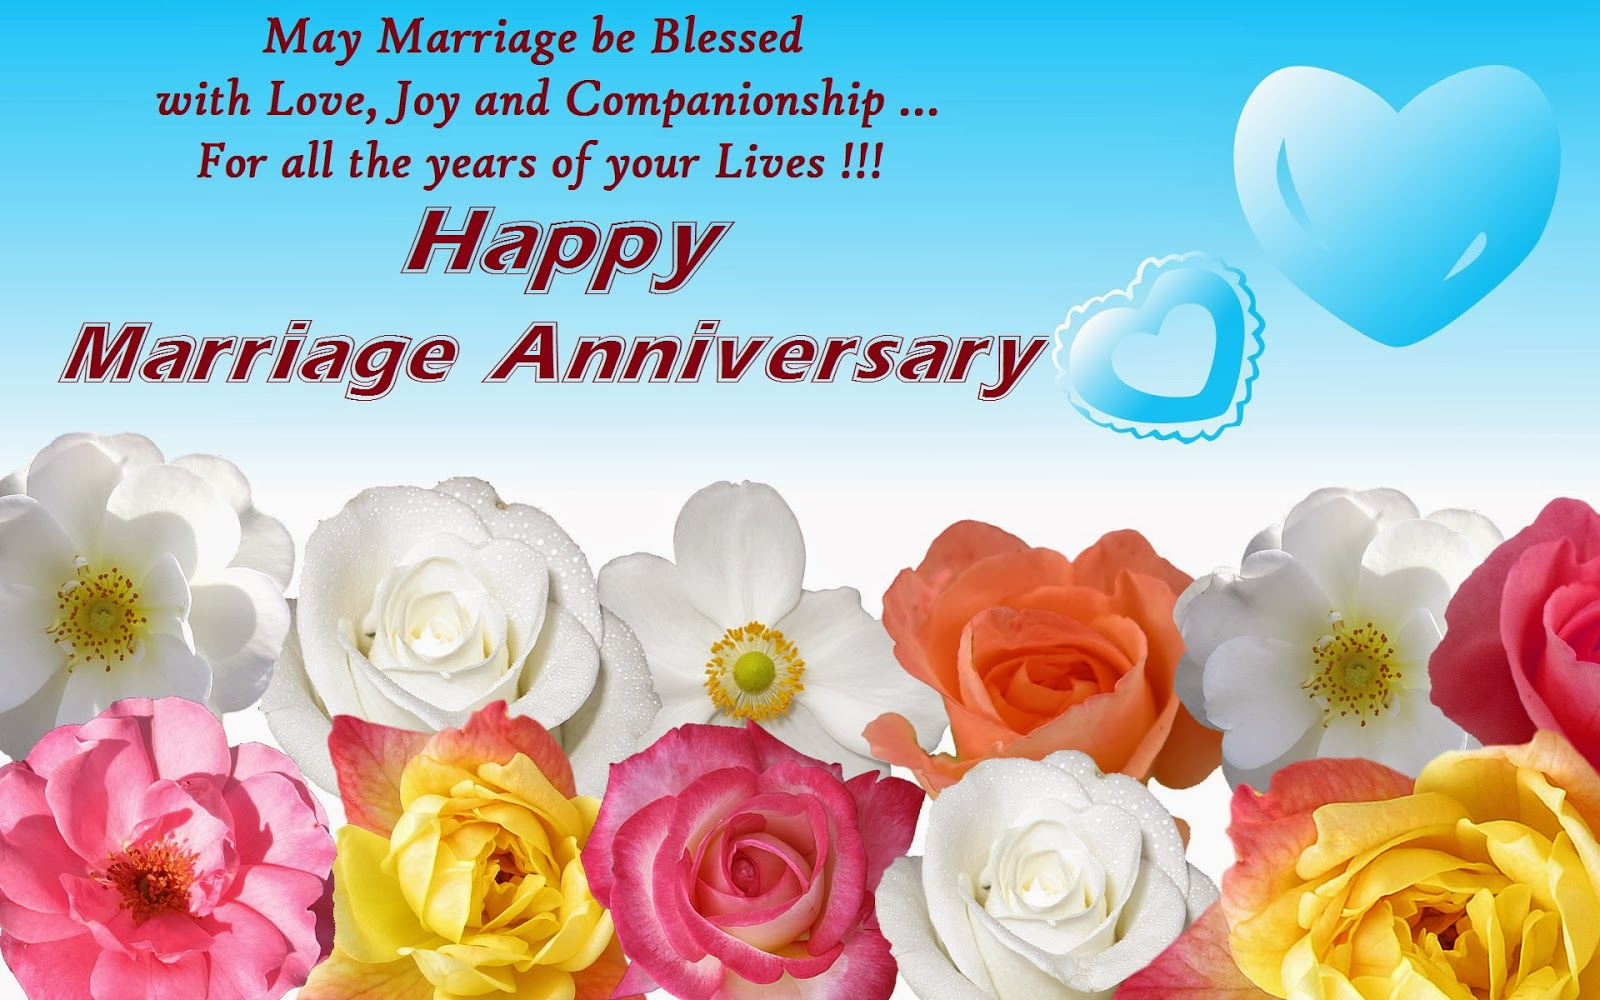 Best Happy Wedding Anniversary Wishes Cards For Husband Wife